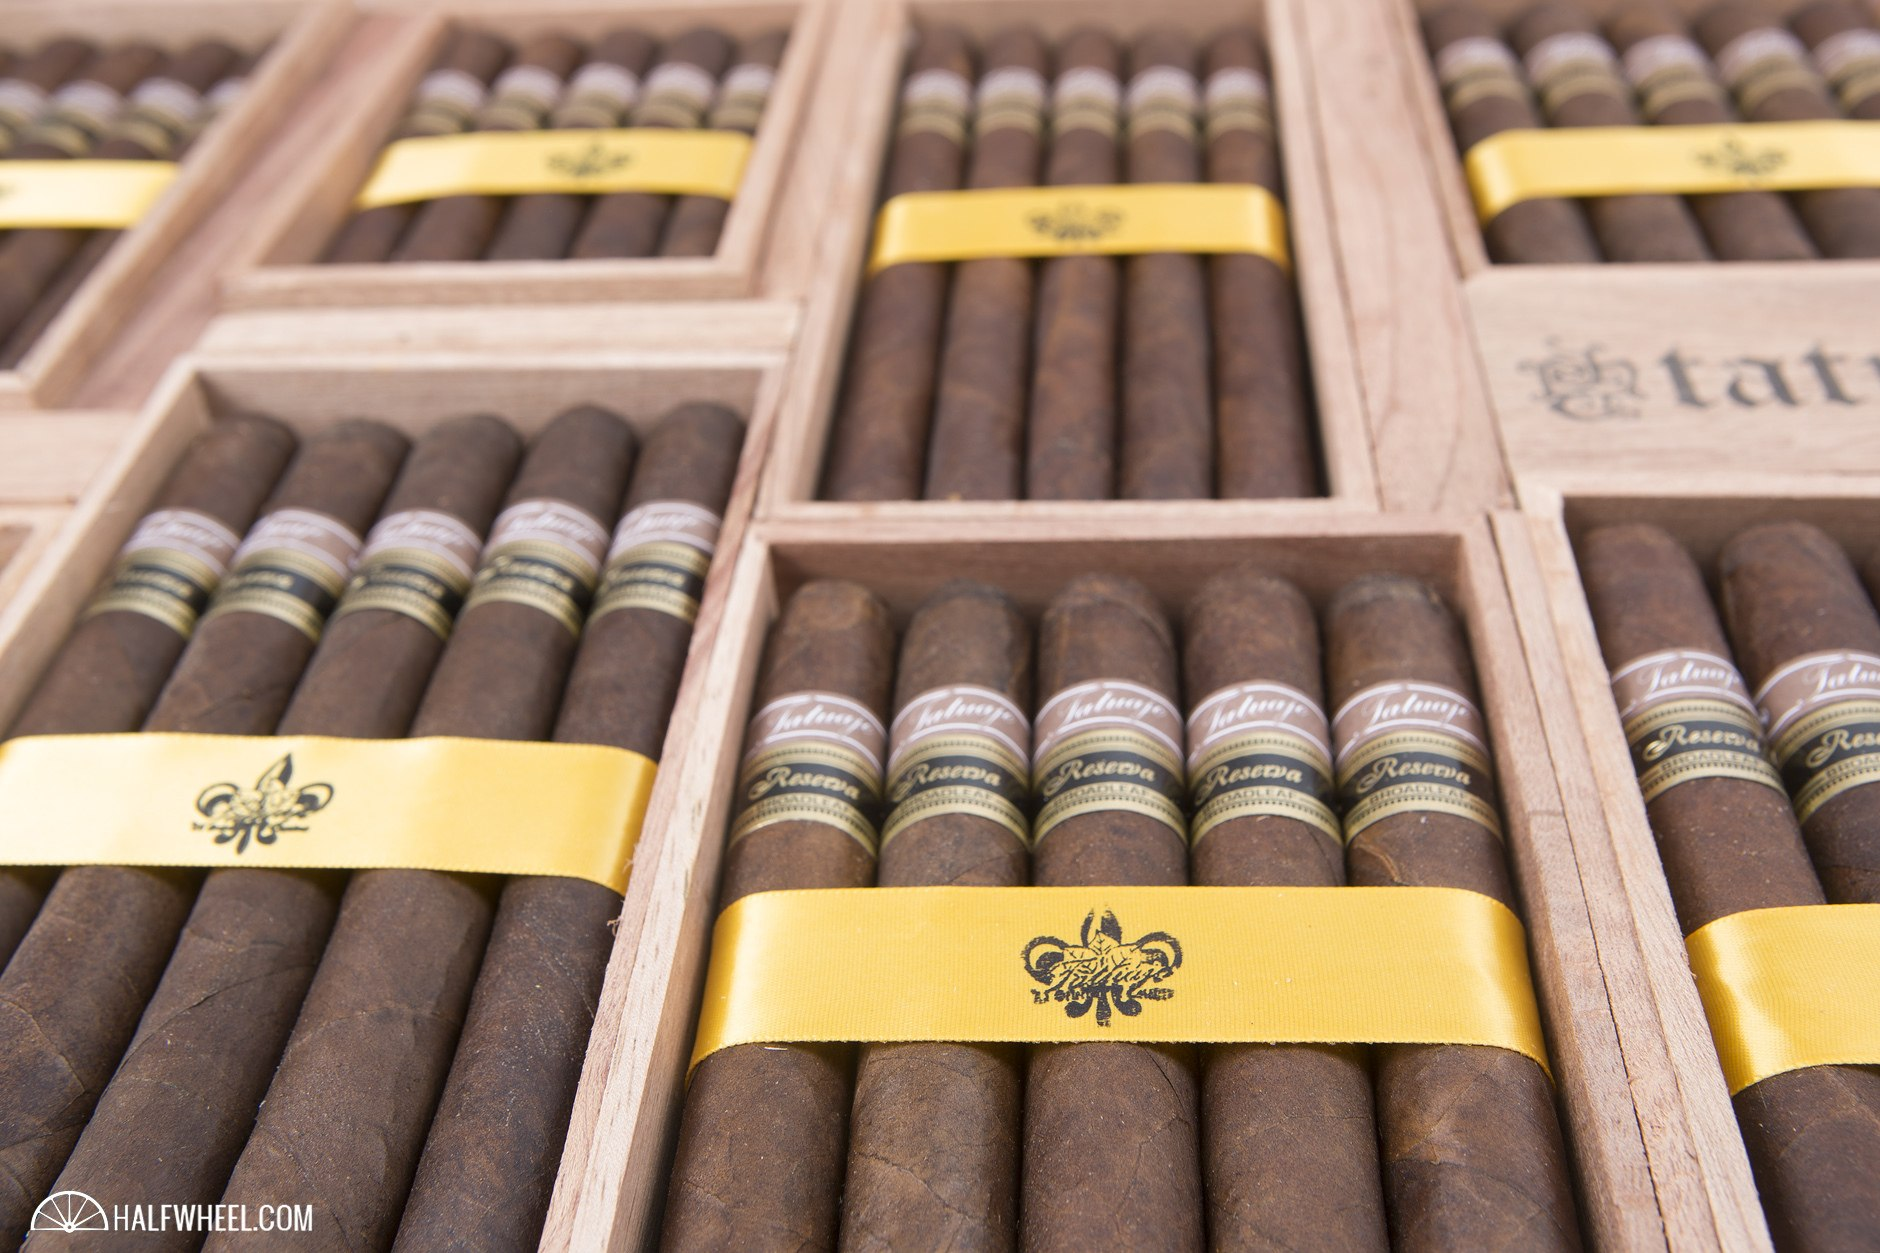 Tatuaje Reserva Broadleaf Collection Box 3